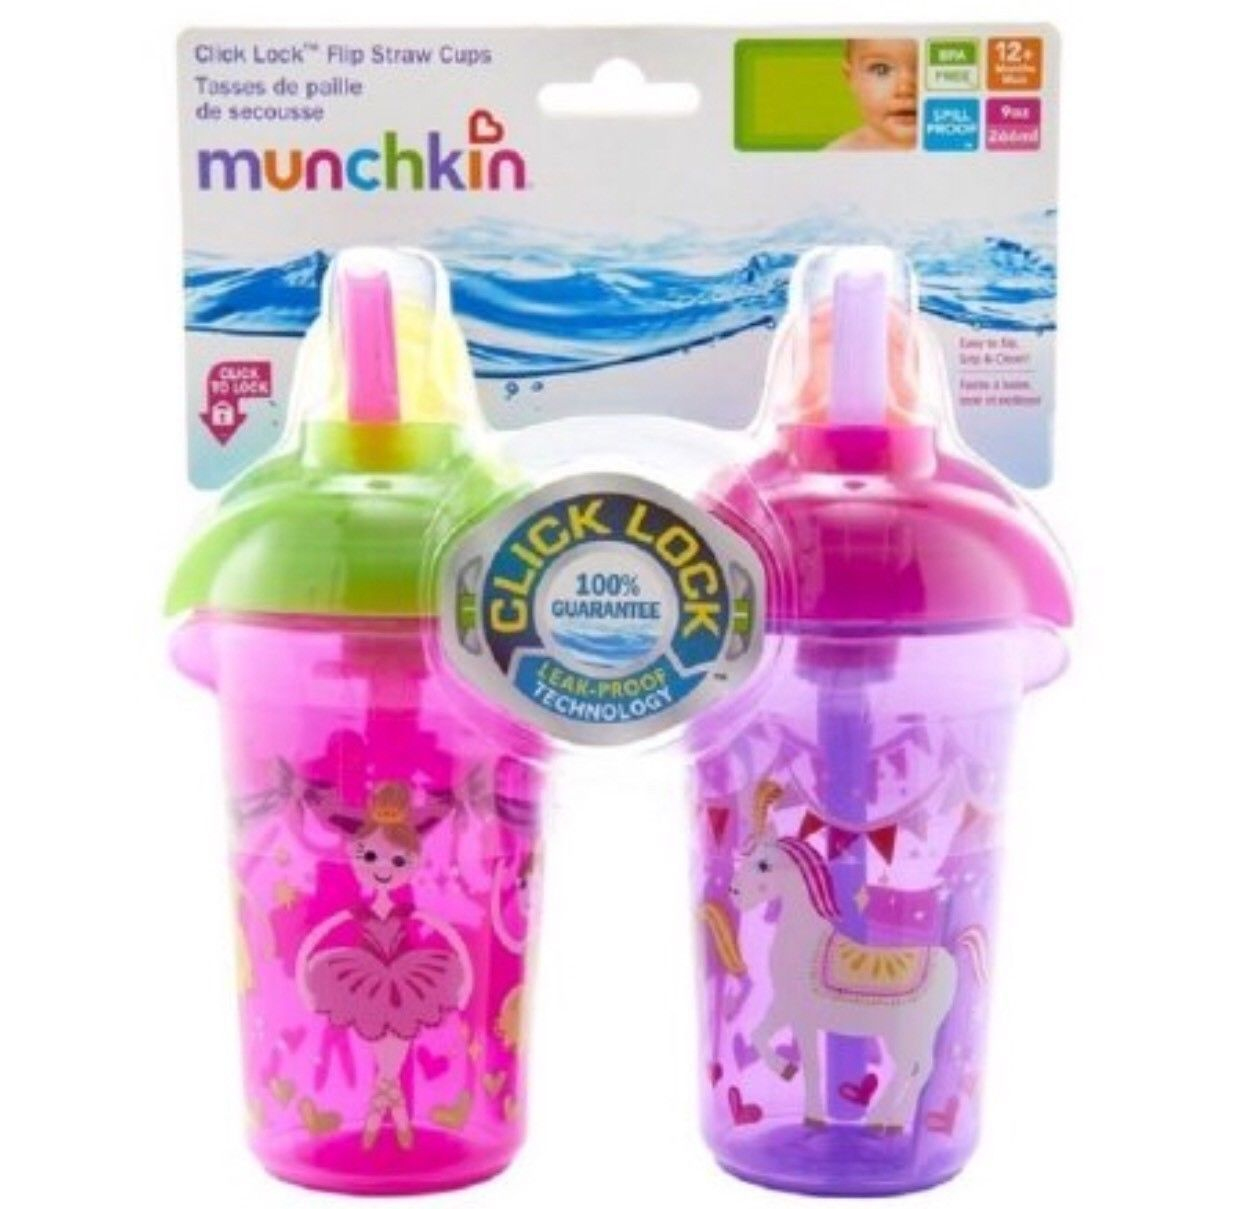 Munchkin - Decorated Flip Straw Cups - 2pk Pink  9 Oz